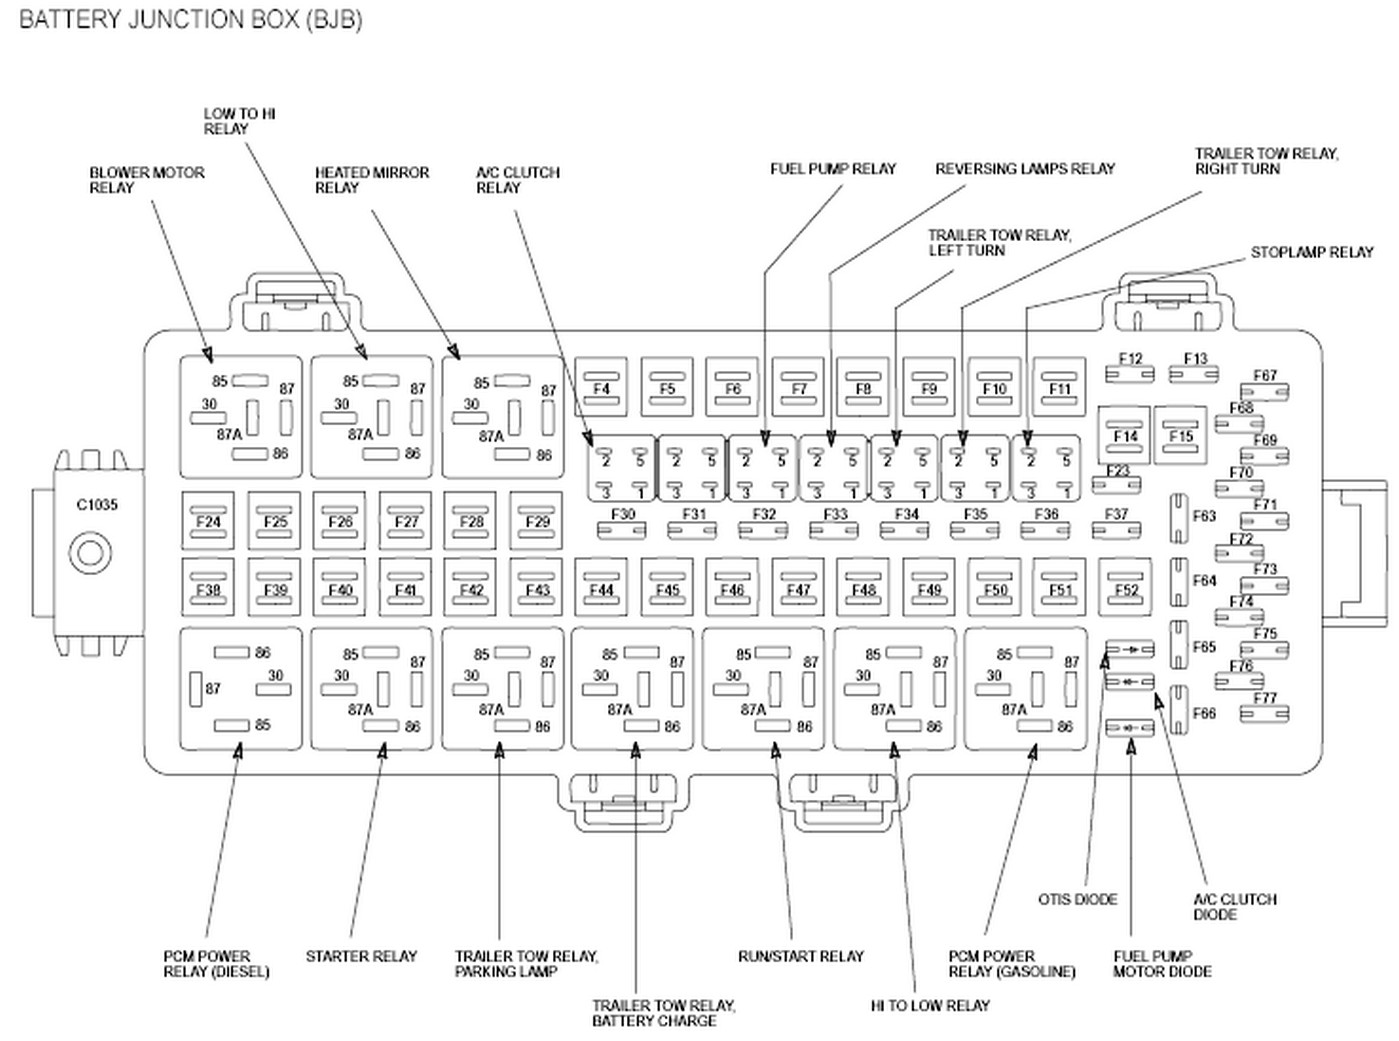 2011 ford f250 fuse box diagram Zoinyhu 2012 f250 fuse box location 2009 ford fusion fuse box diagram 2012 ford edge fuse box diagram at reclaimingppi.co